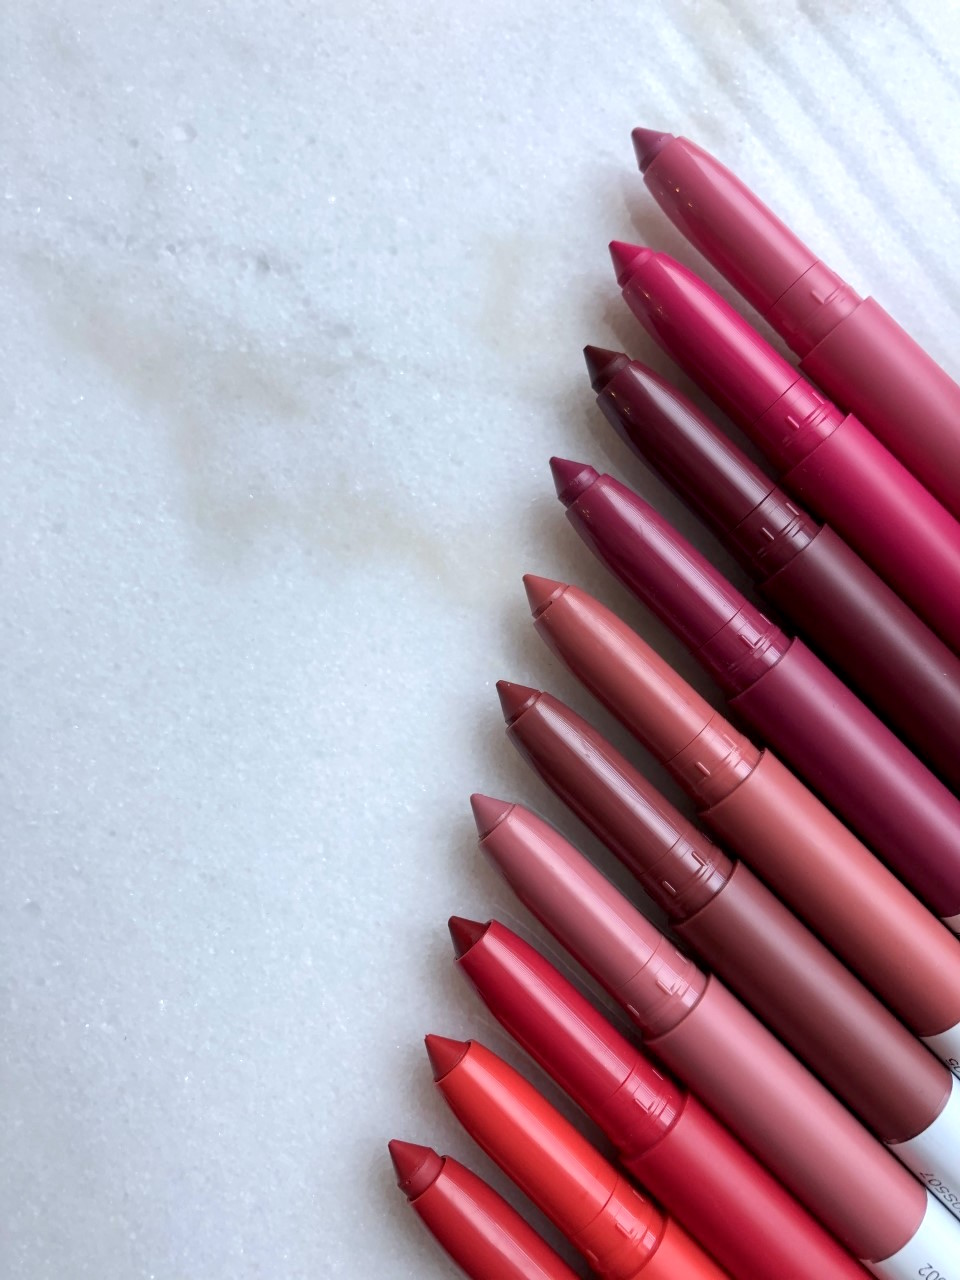 Maybelline SuperStay Ink Crayon Lipstick: A quick review